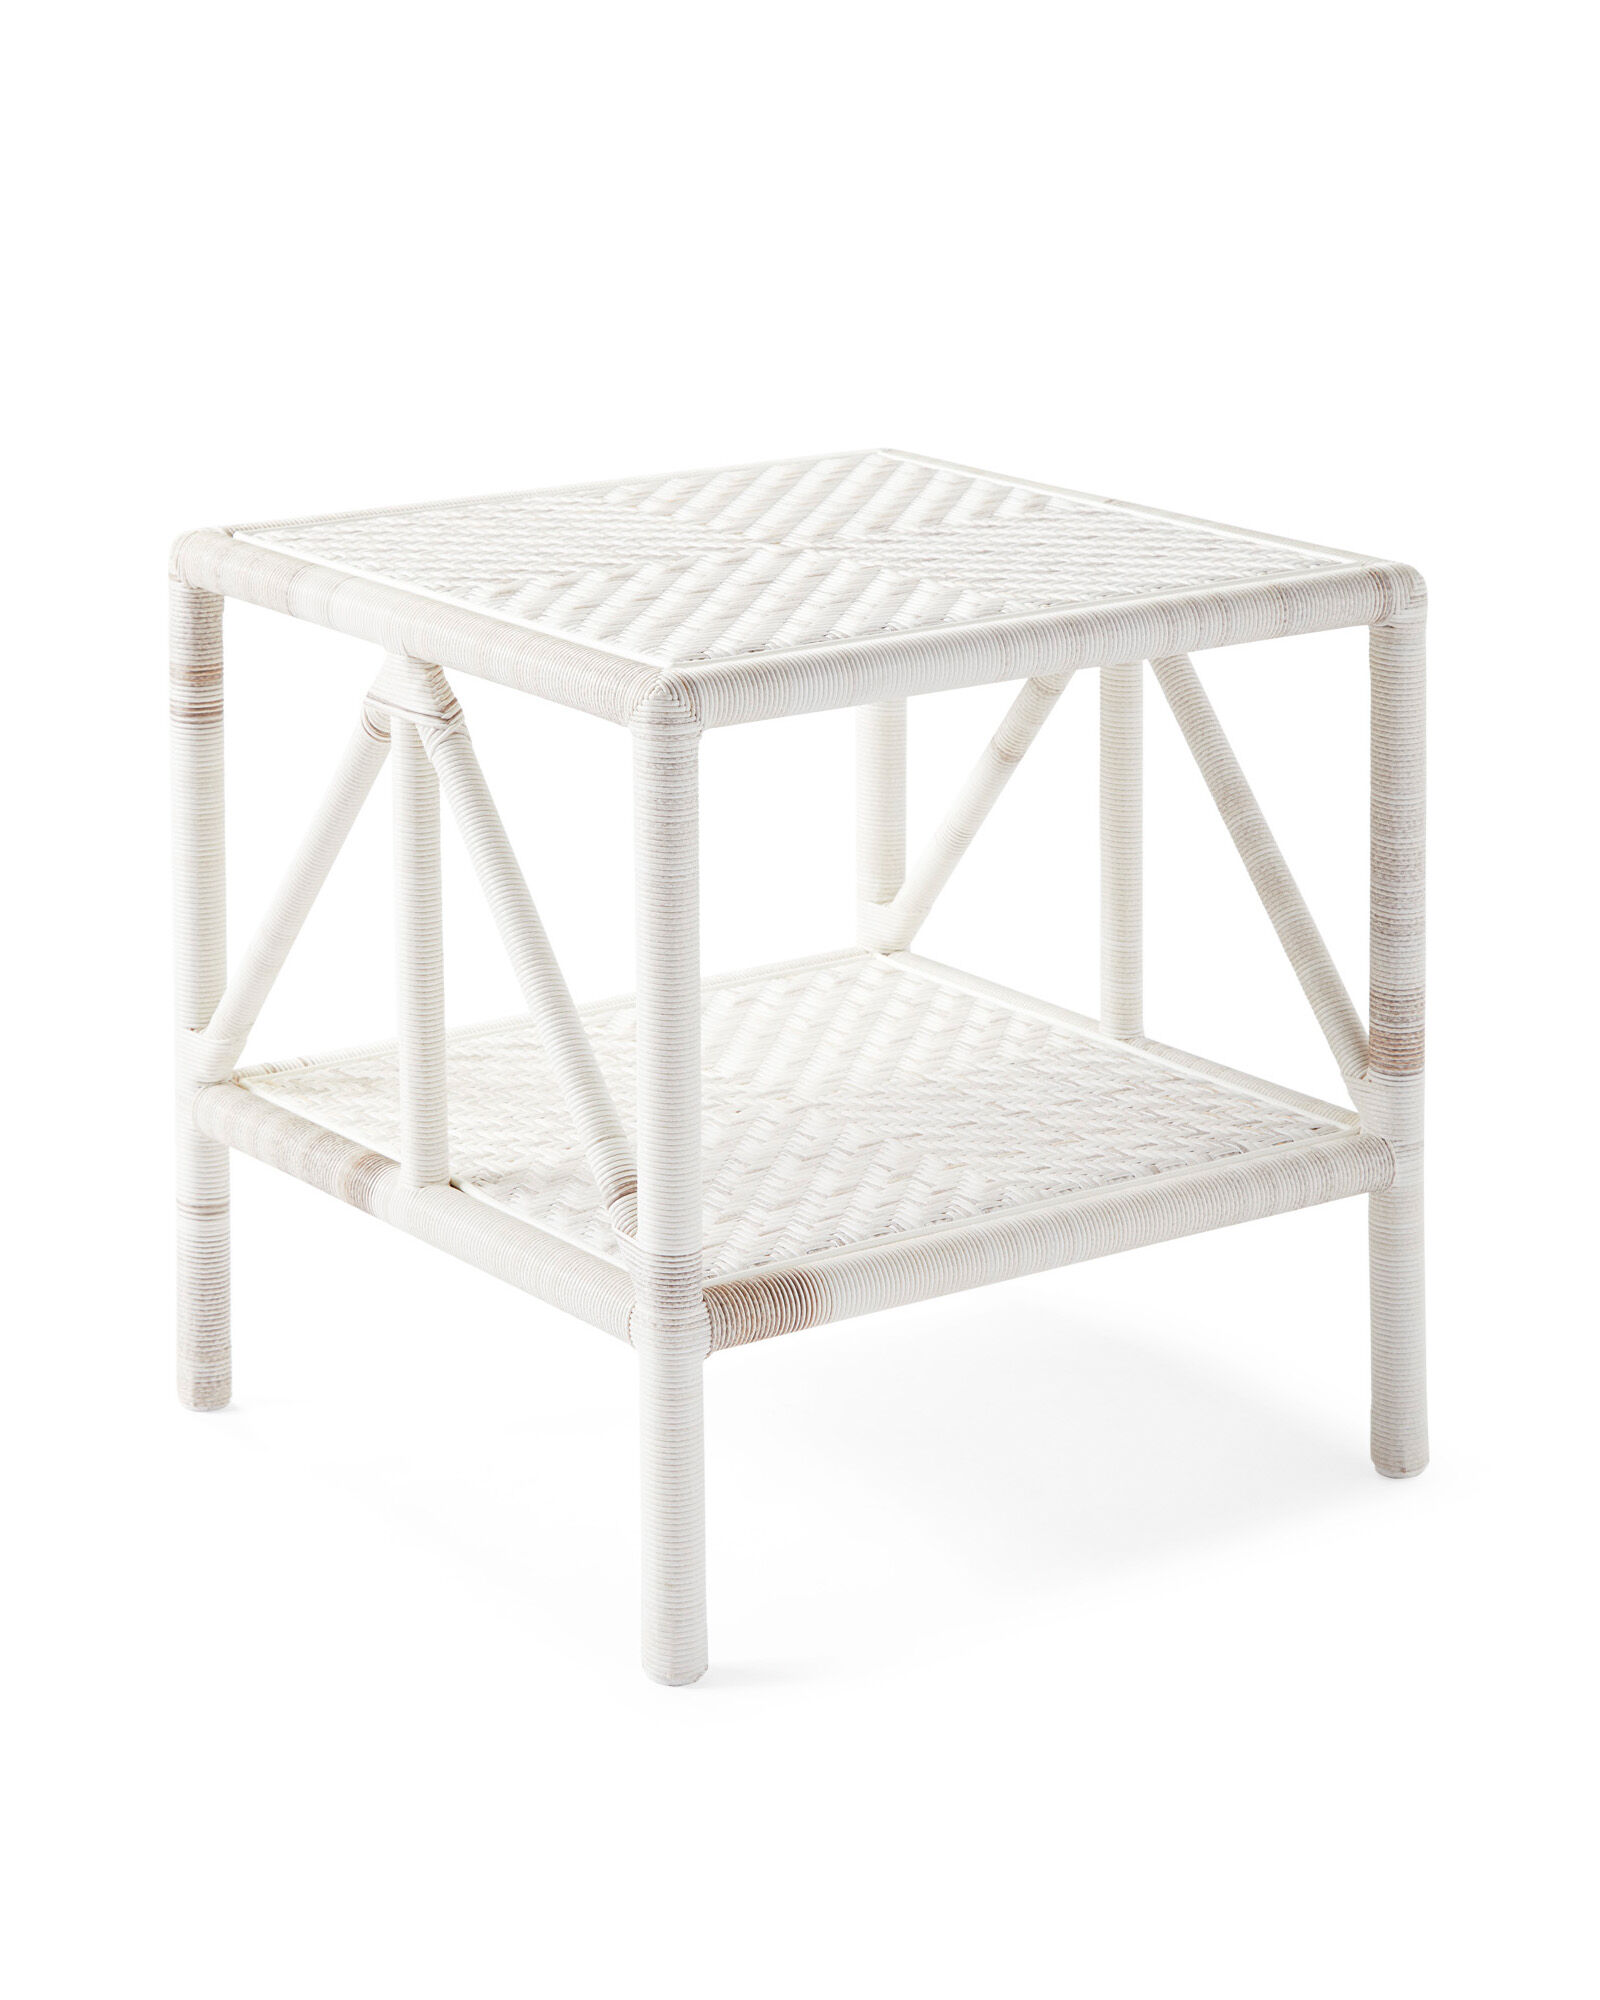 Trestle Outdoor Side Table